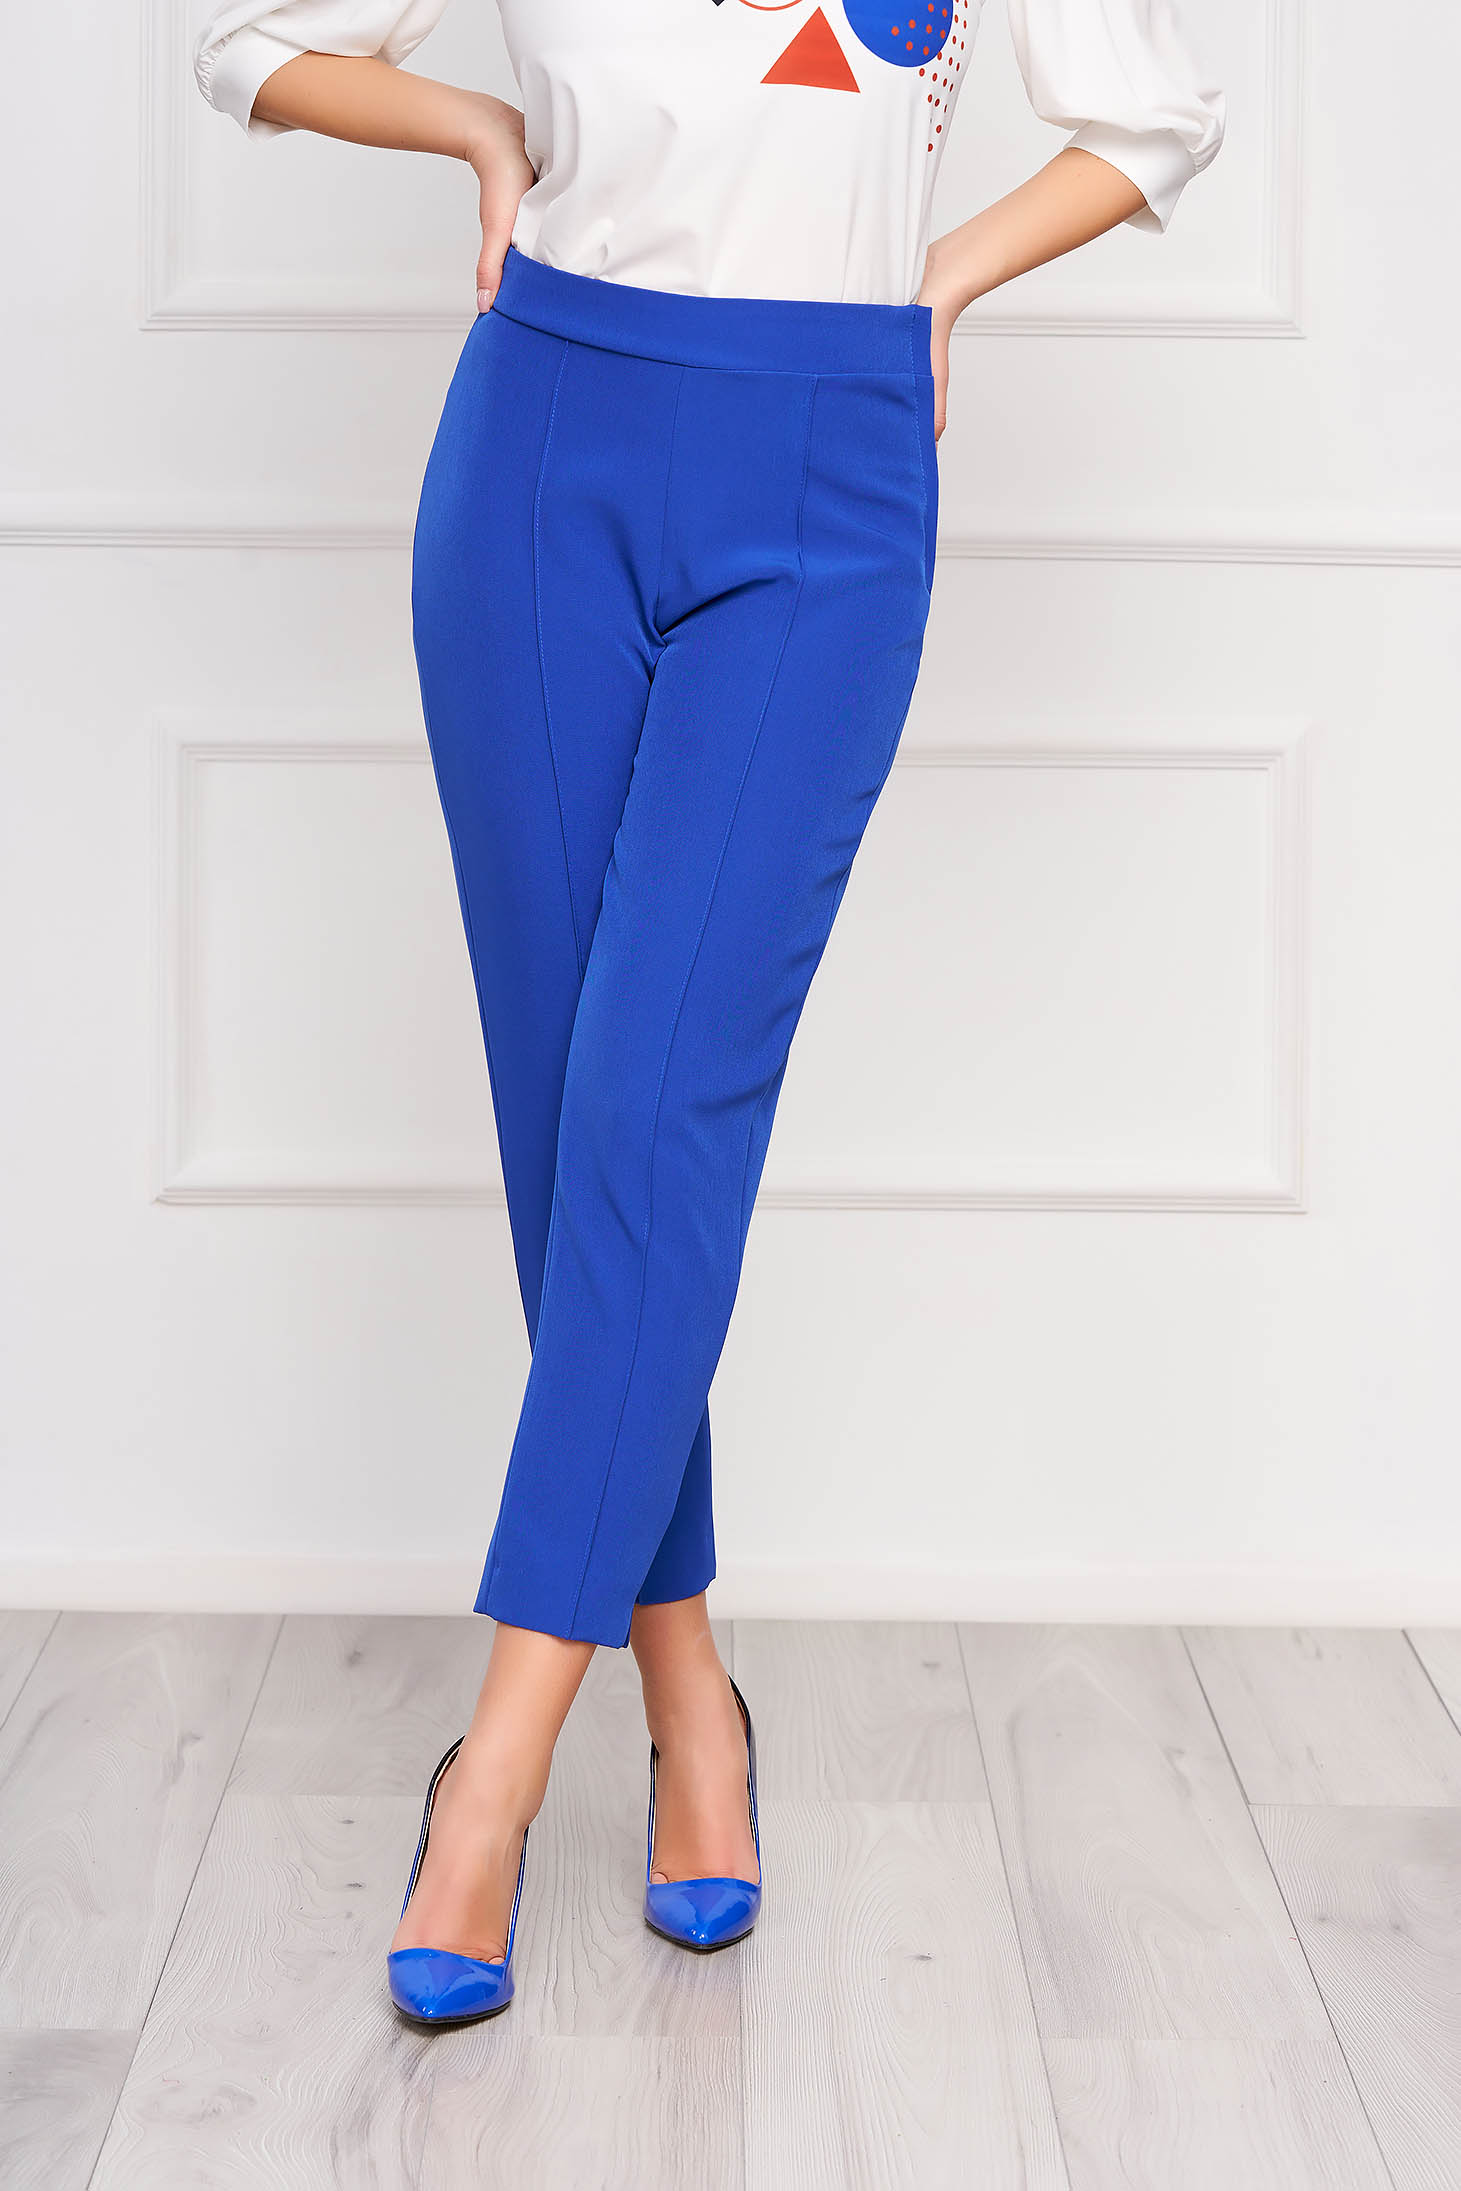 StarShinerS blue trousers office high waisted slightly elastic fabric with pockets conical